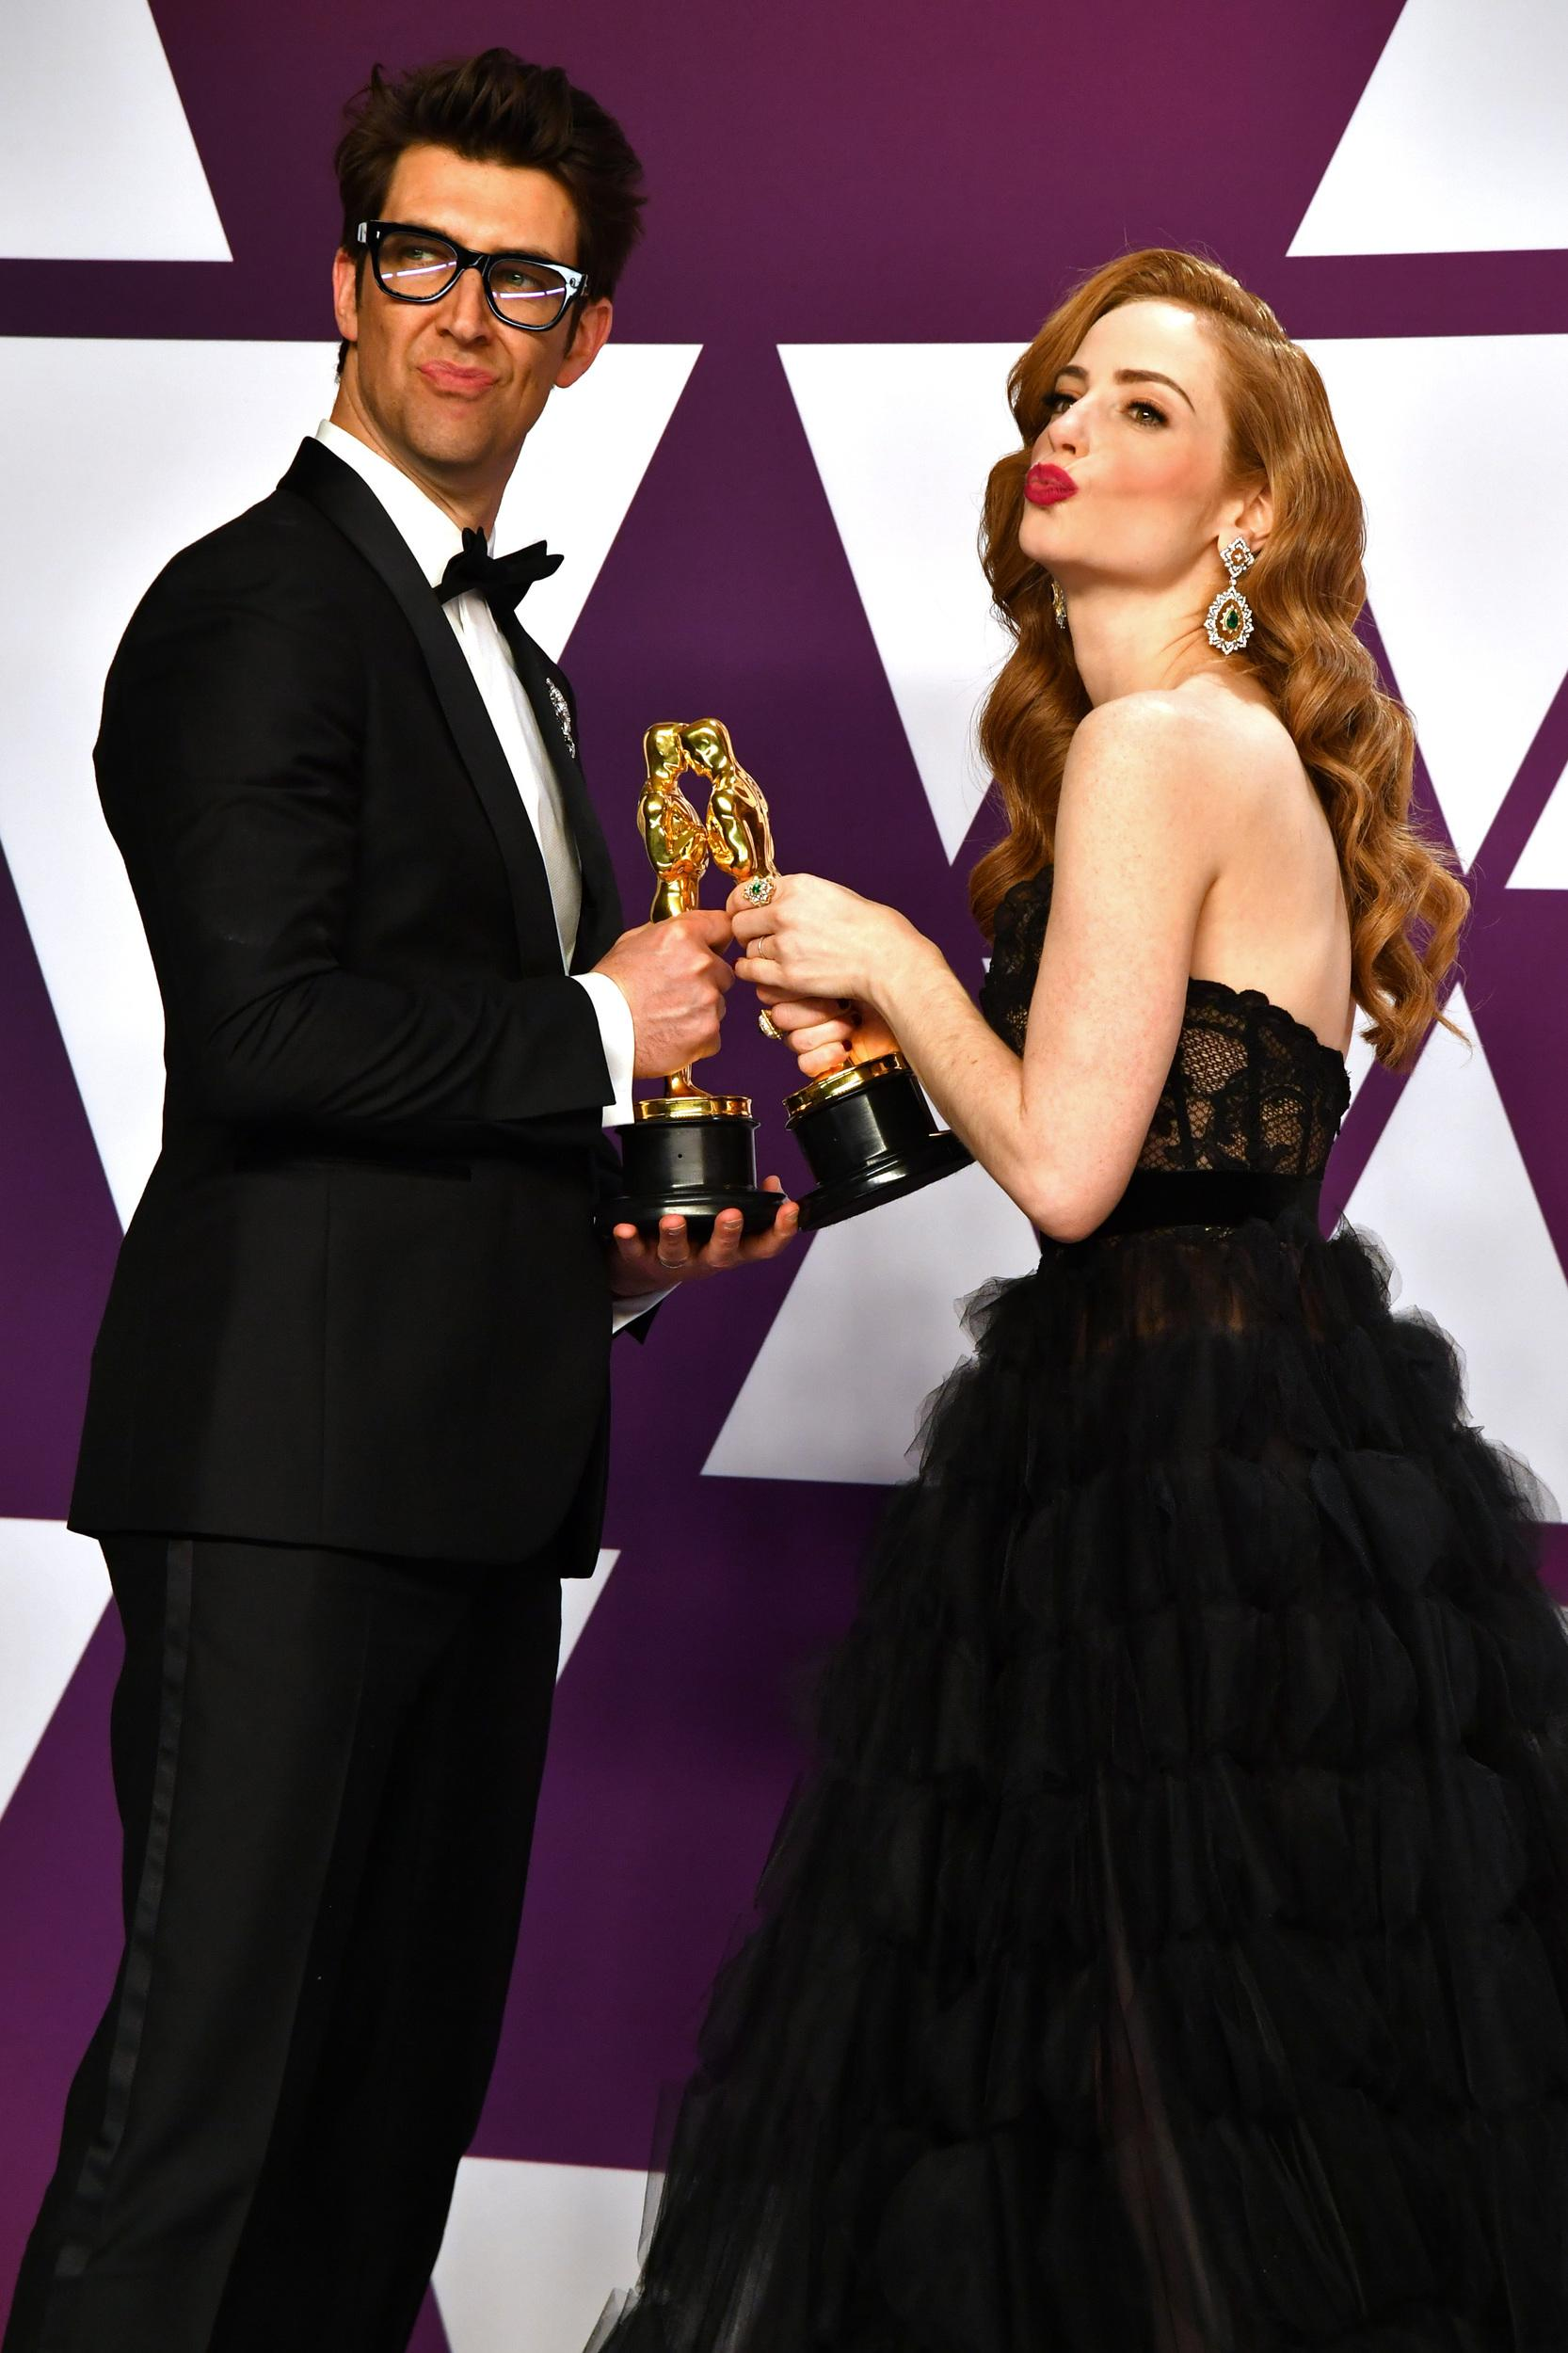 HOLLYWOOD, CA - FEBRUARY 24:  Guy Nattiv (L) and Jaime Ray Newman, winners of Best Live Action Short Film for 'Skin' pose in the press room during at Hollywood and Highland on February 24, 2019 in Hollywood, California.  (Photo by Jeff Kravitz/FilmMagic)